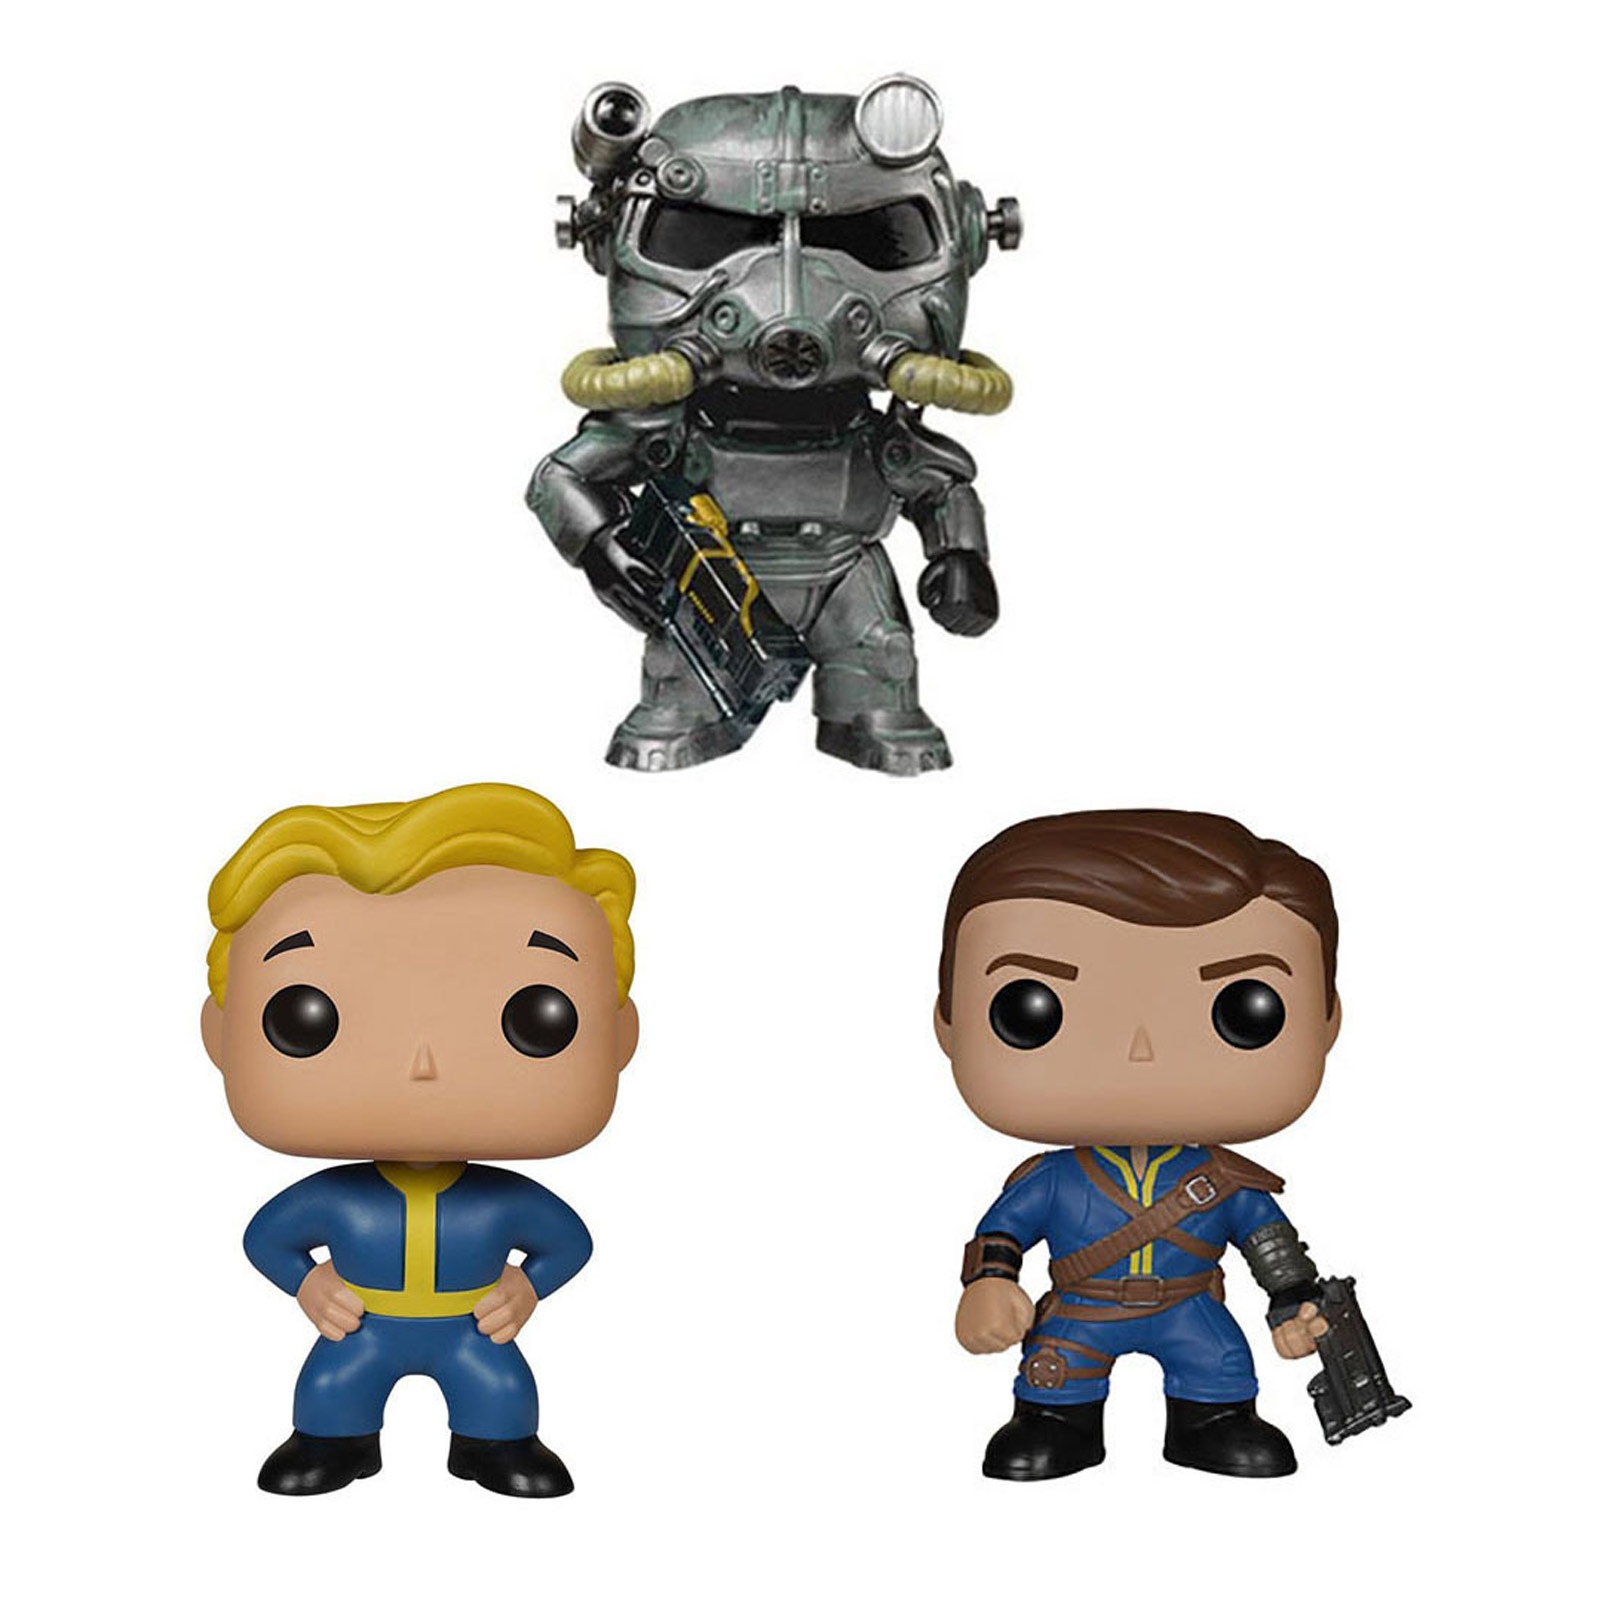 Fallout Lone Wanderer Game Figurines model 10cm PVC model Fall Out 4 Vault Boy & Power Armor Action Figure Toys image